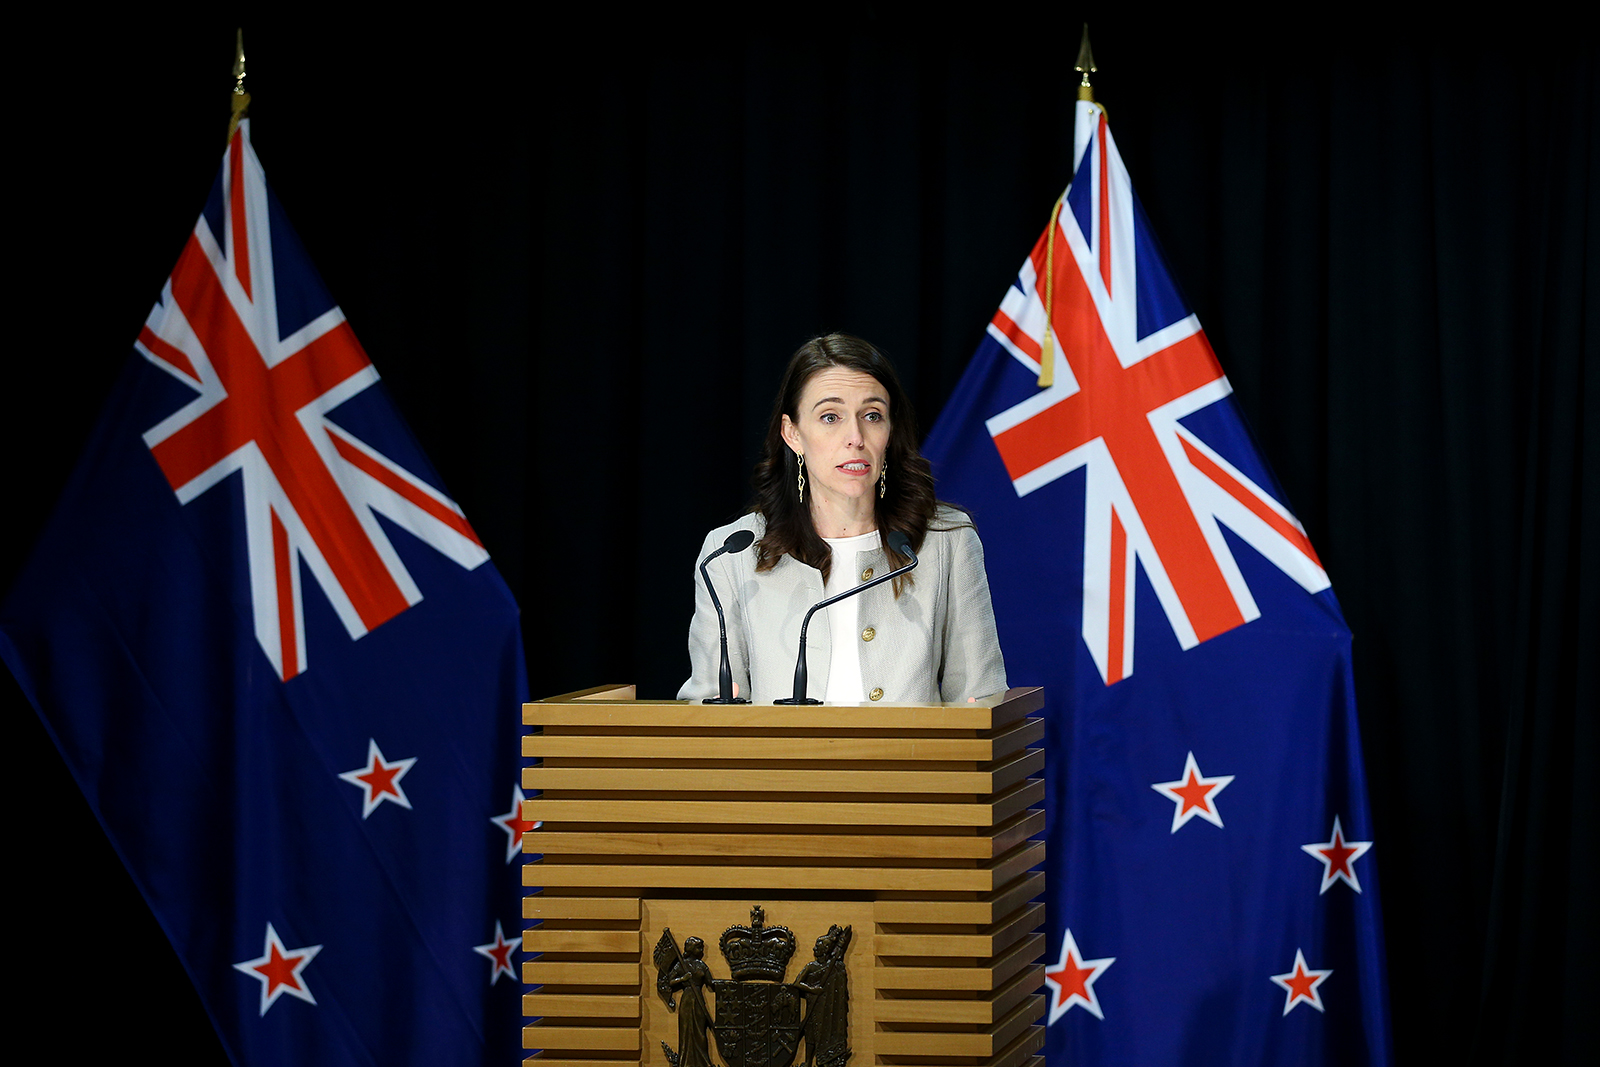 New Zealand Prime Minister Jacinda Ardern speaks during a press conference in Wellington, New Zealand on August 14.